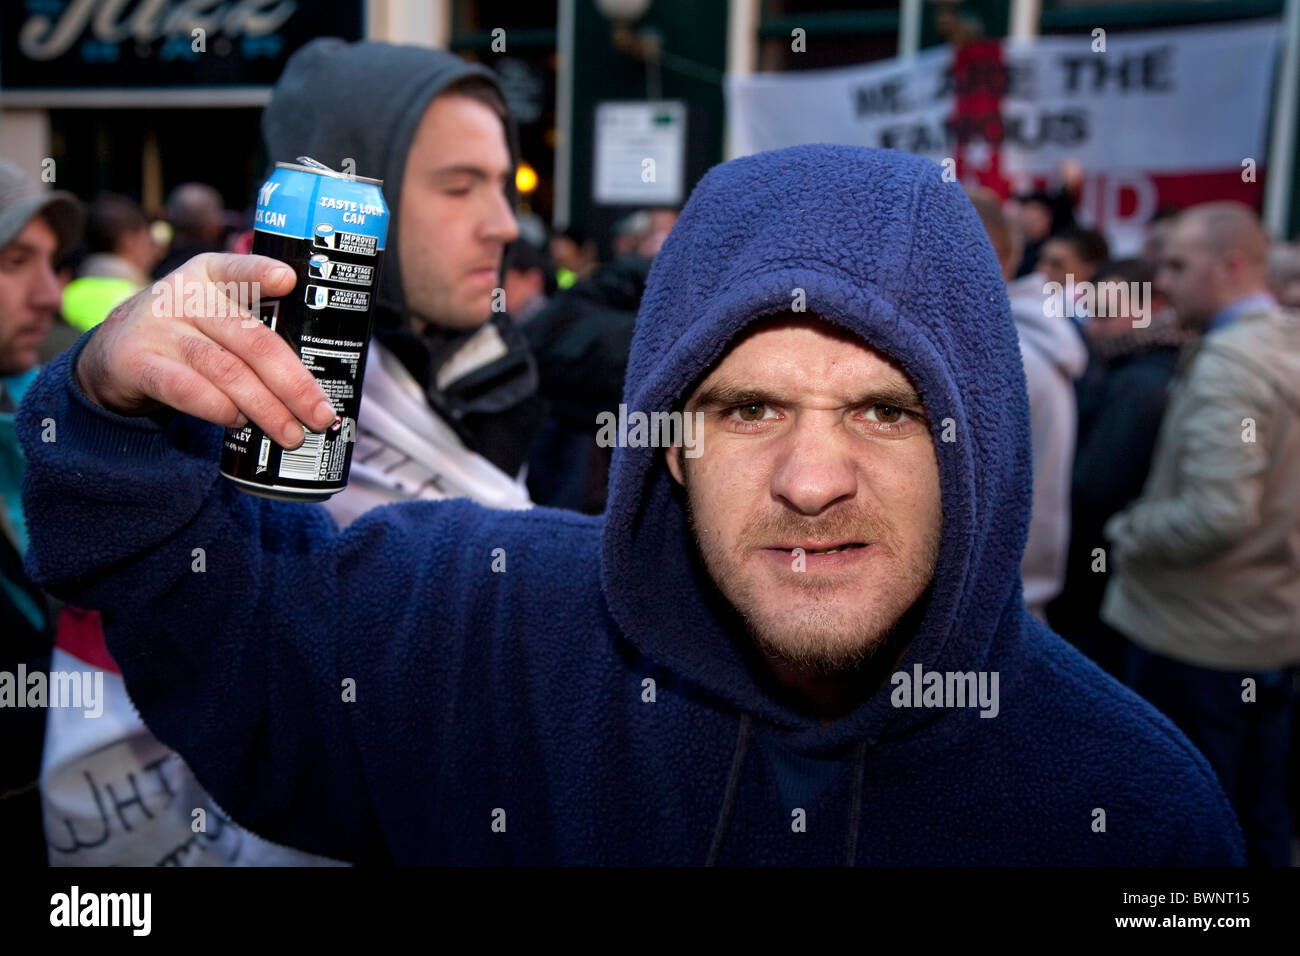 English Defence League EDL member with can of lager glaring and snarling at an anti islamic protest march in preston - Stock Image